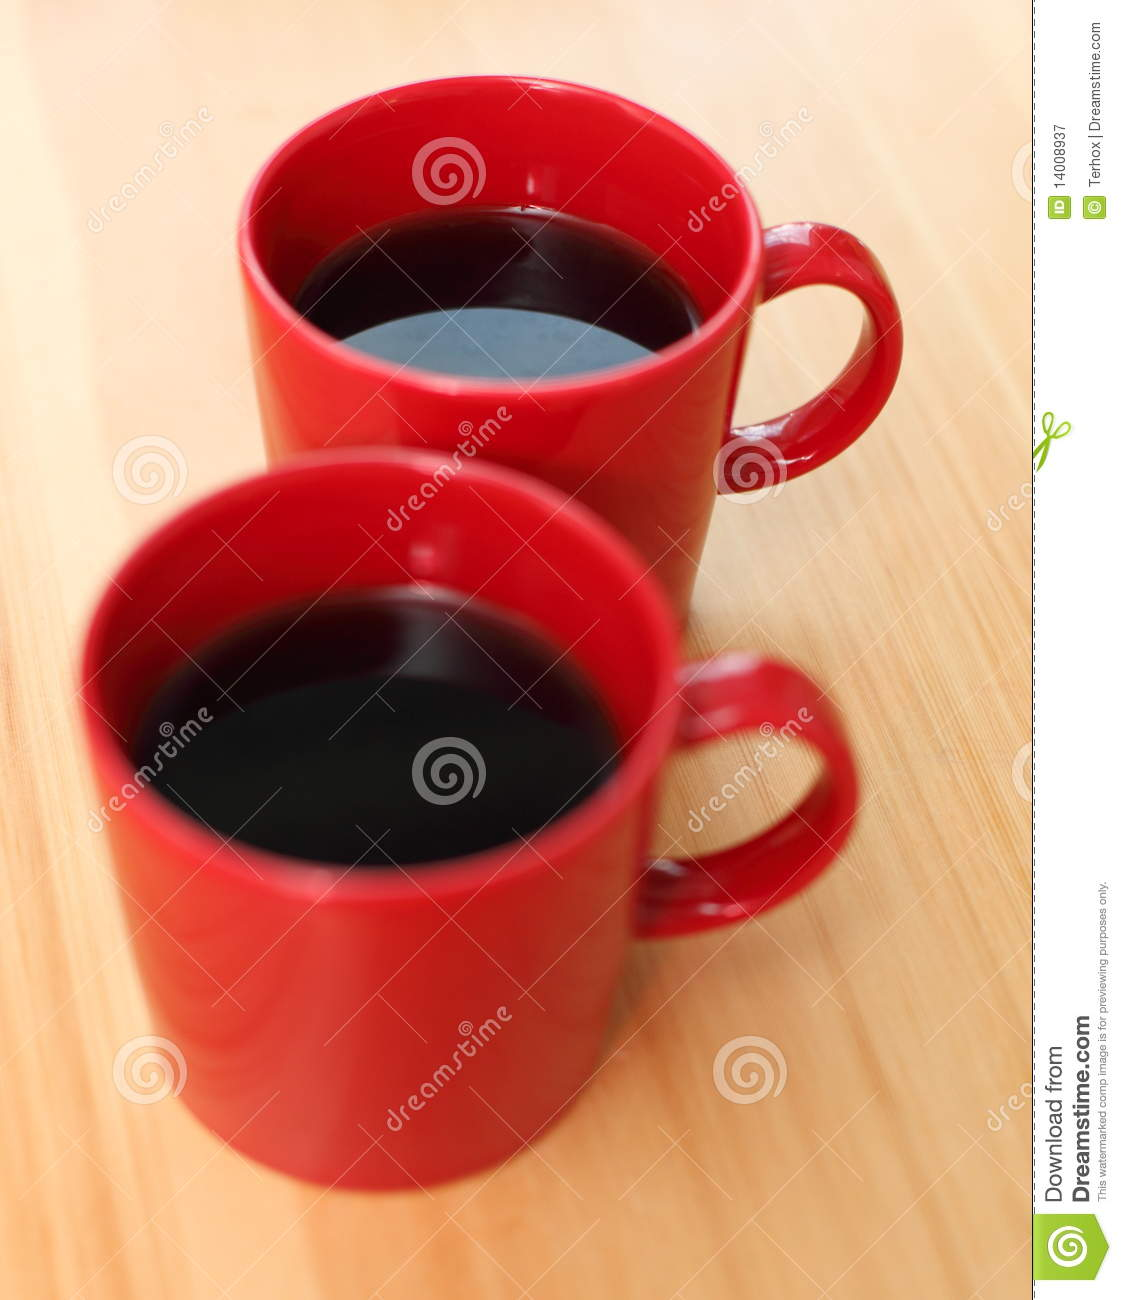 Red Coffee Mugs Royalty Free Stock Photography - Image ...